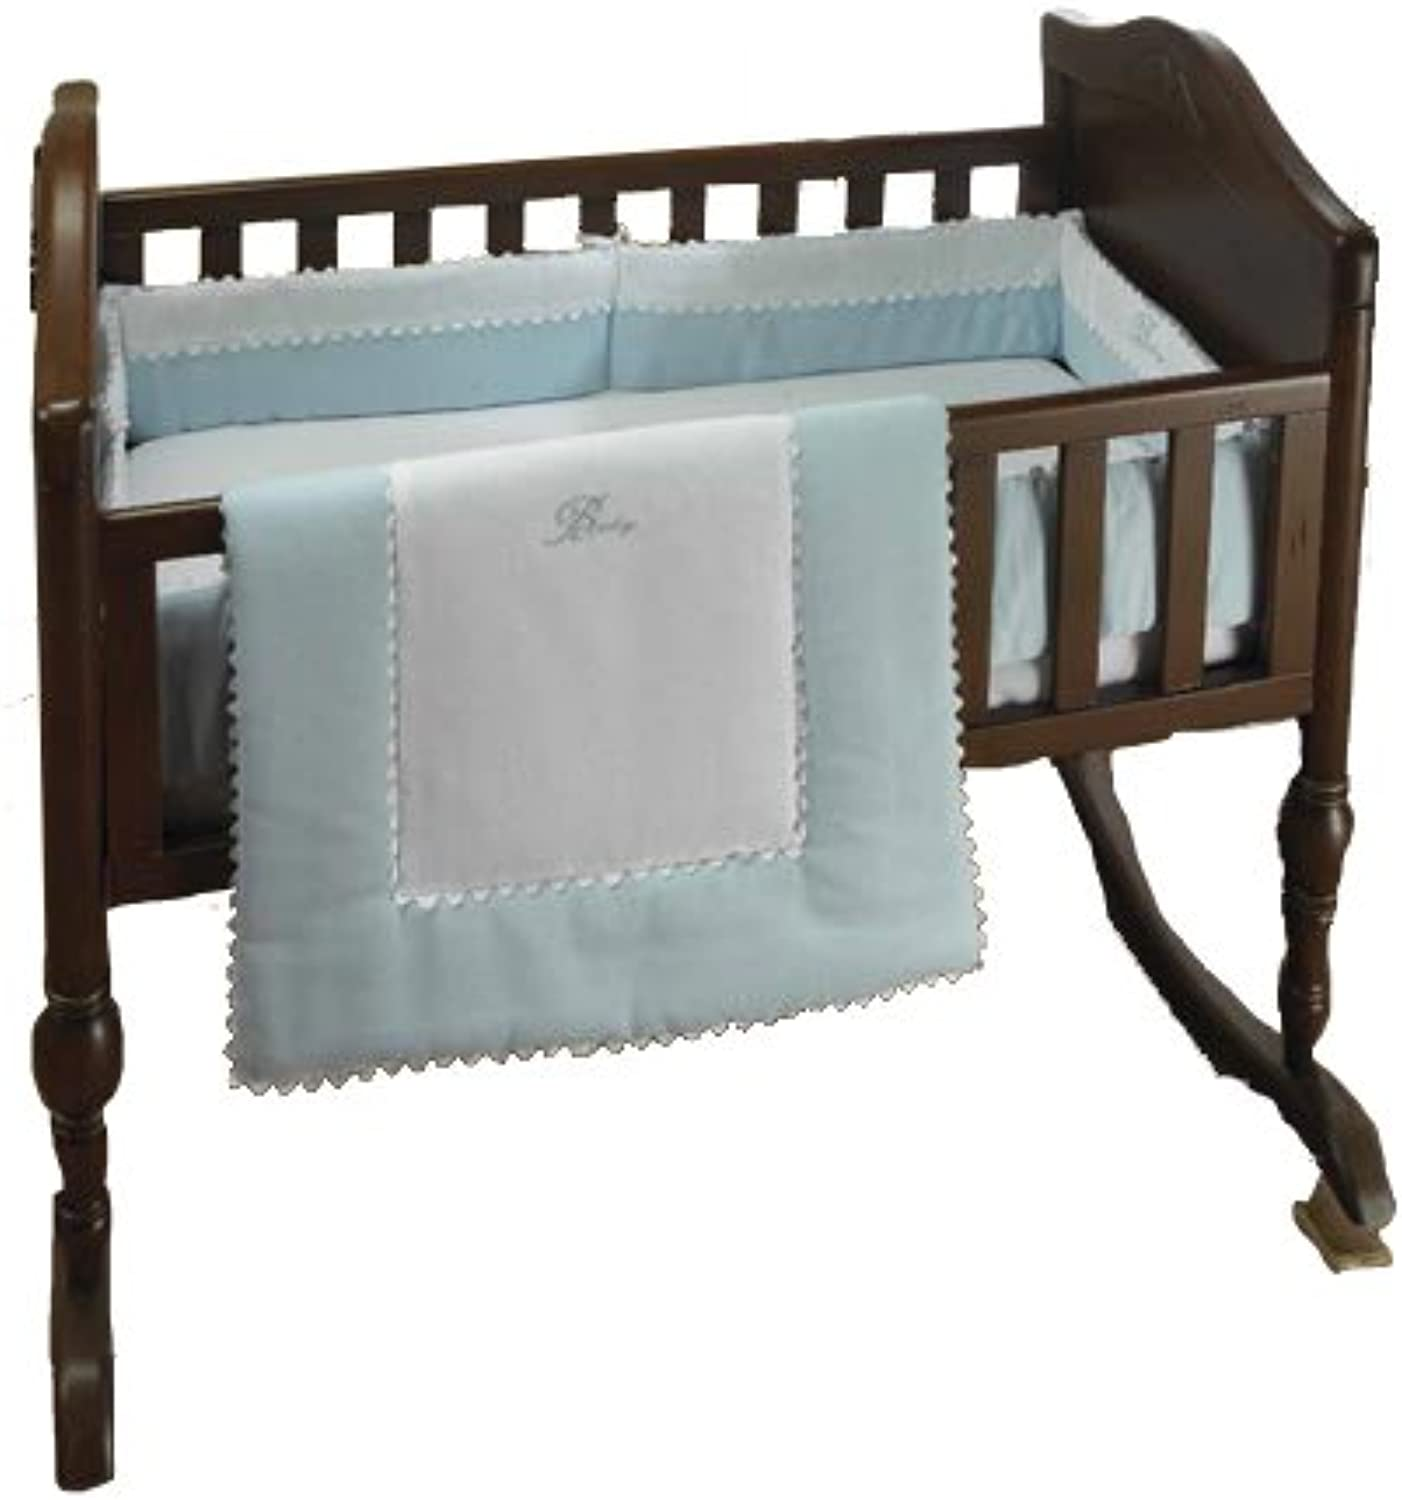 Bkb Ric Rac Cradle Bedding, Light bluee, 18  X 36